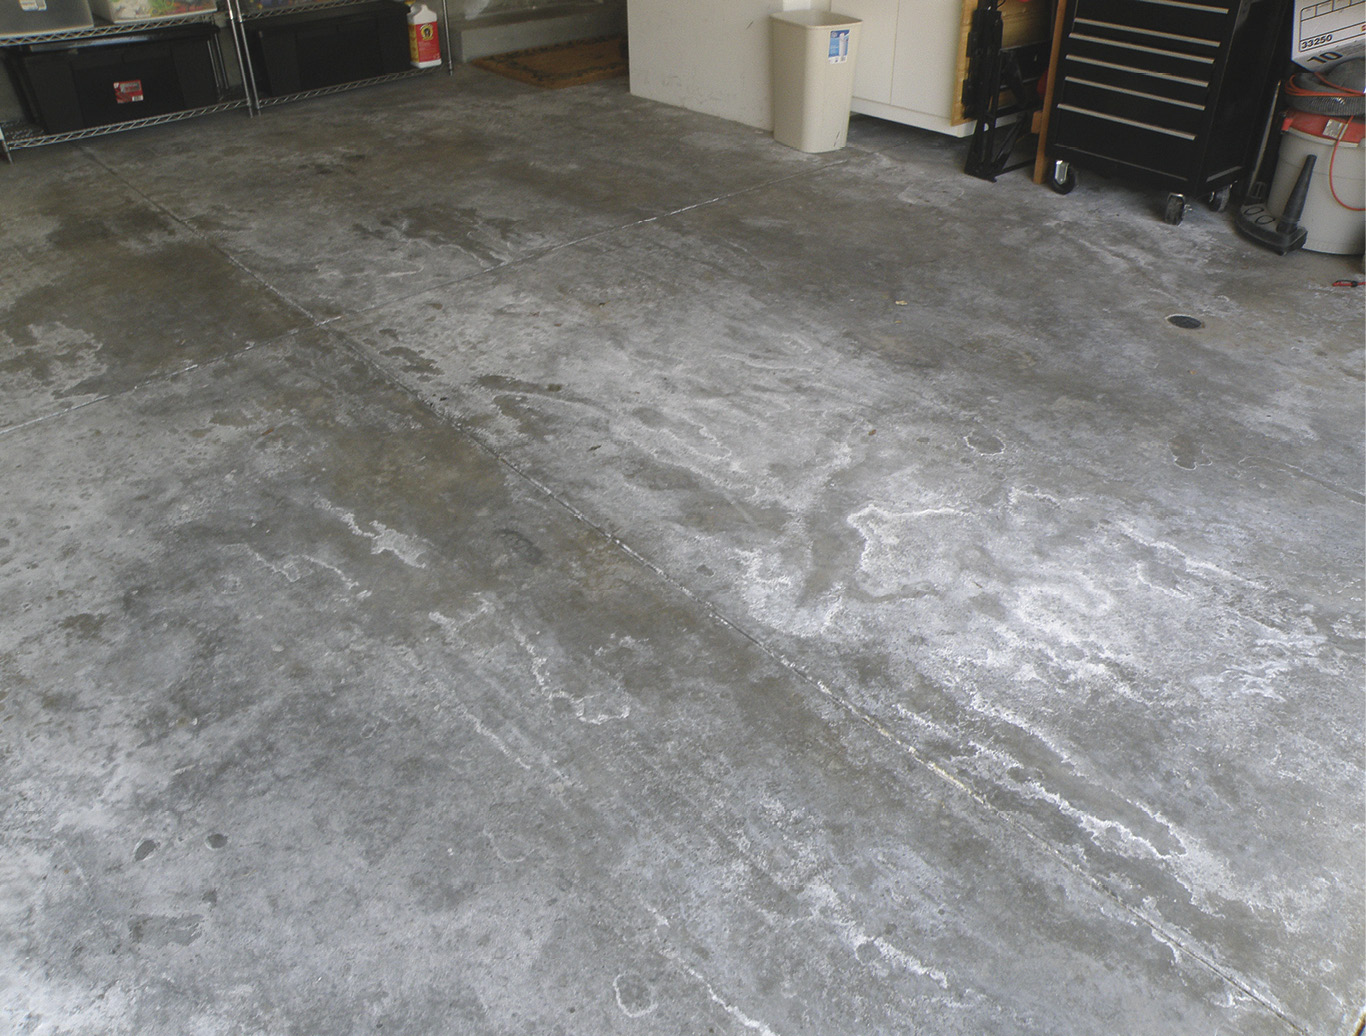 Moisture in concrete slabs can be due to topography, skipped testing, improper application or other factors. Seen here is severe blooming efflorescence, one of the unsightly results of excess moisture.